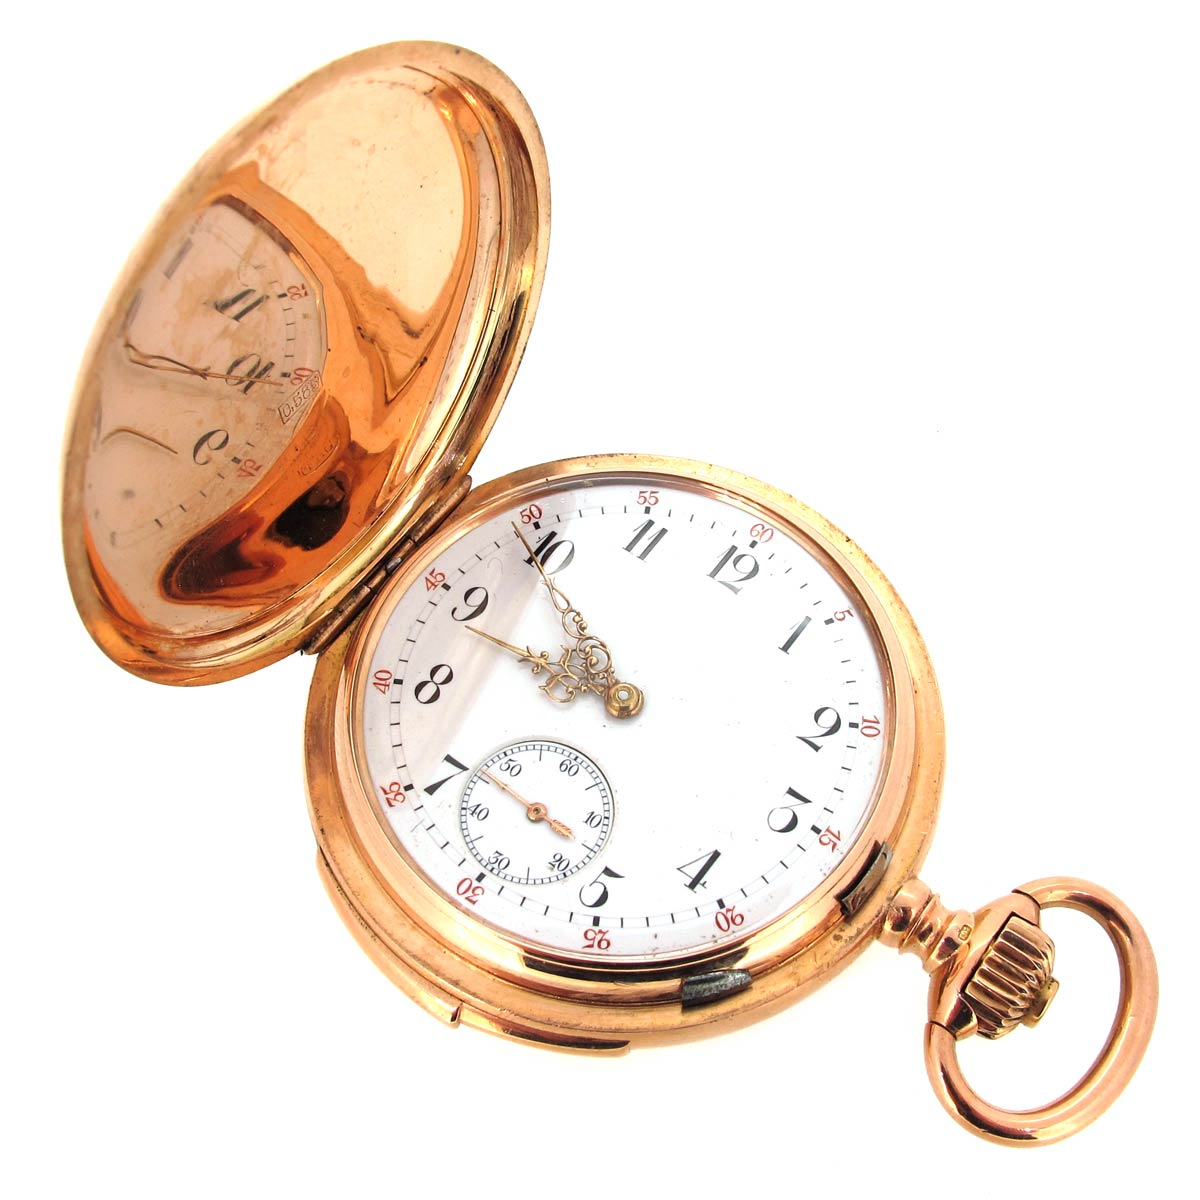 Antique Gold Minute Repeater Pocket Watch